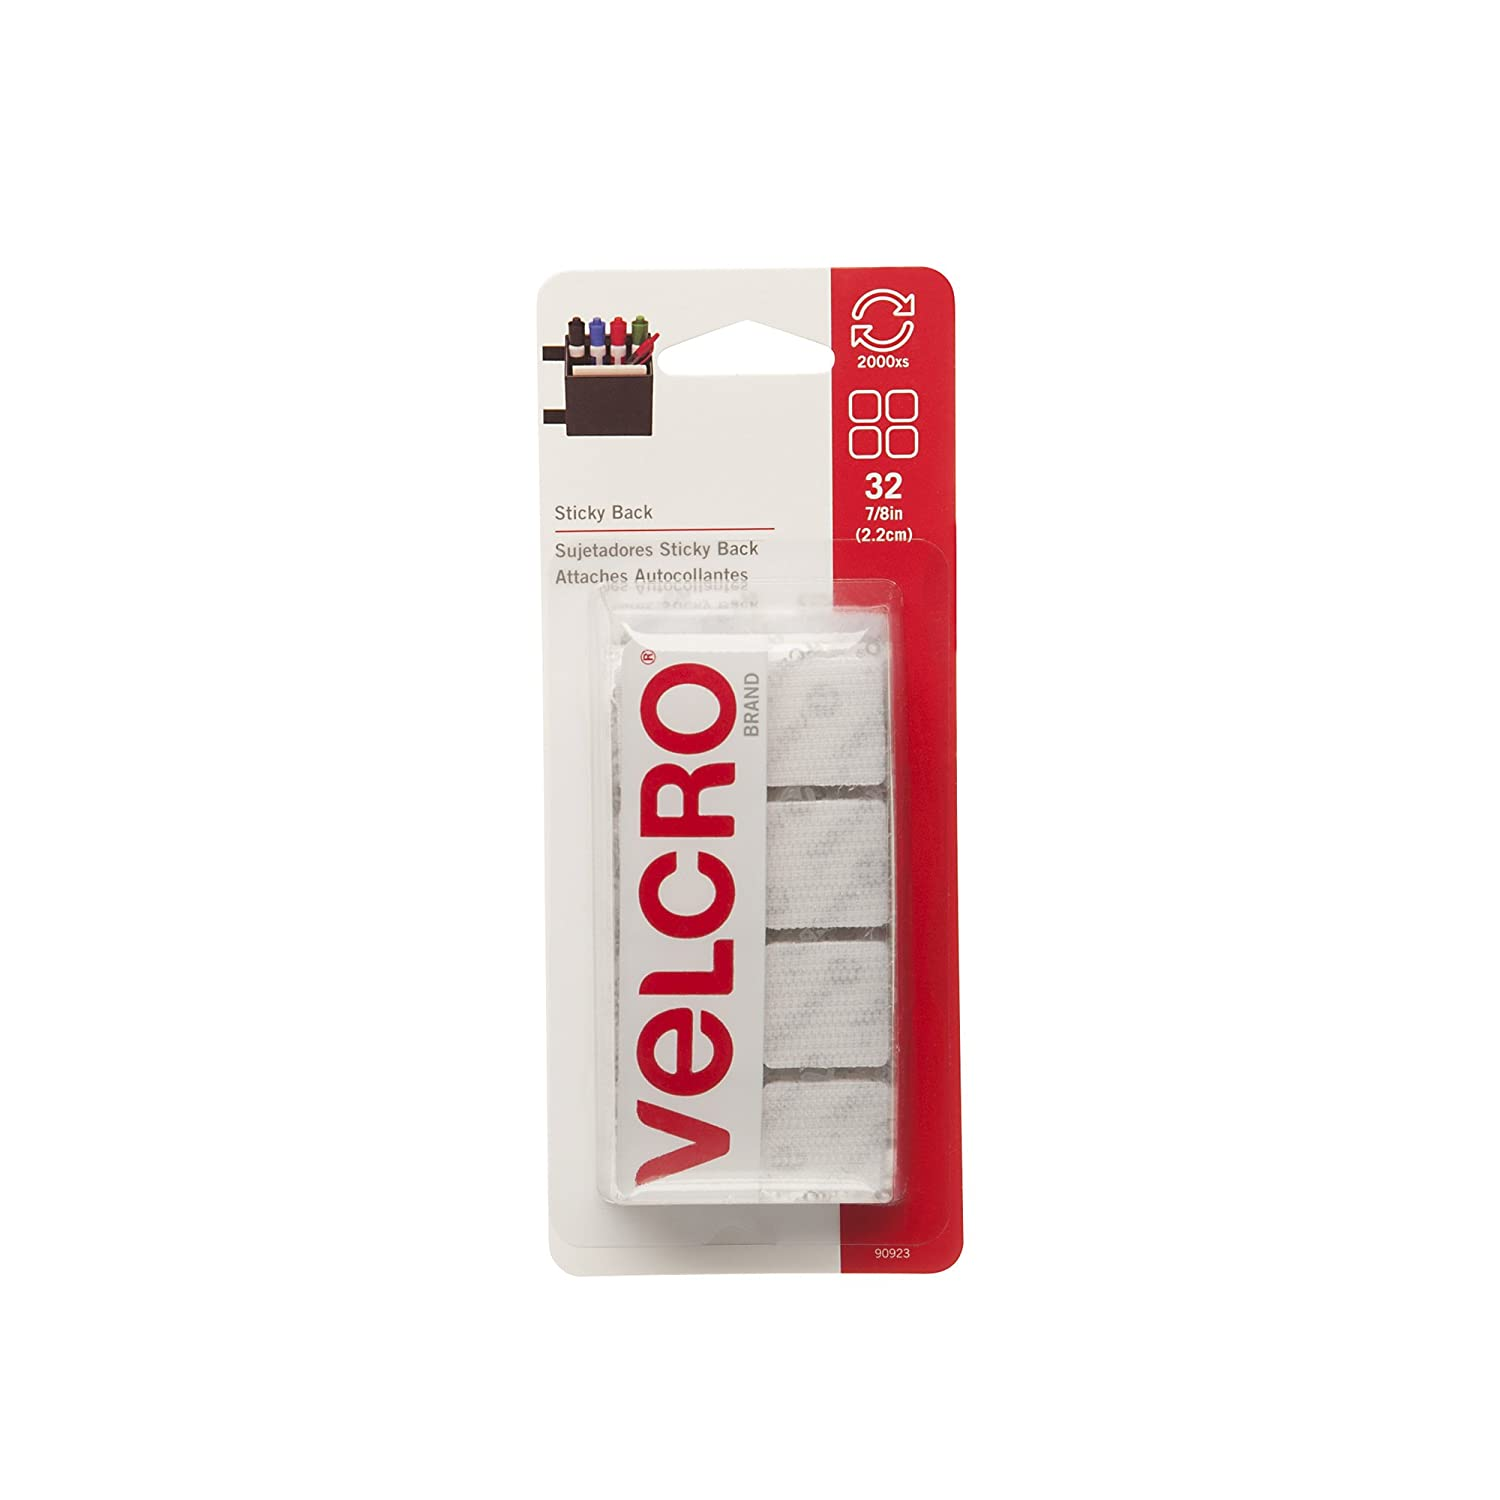 VELCRO Brand Sticky Back | Hook and Loop Fasteners | Keep Things Organized and Connected | 7/8in | 32 Squares, White VELCRO® Brand 90923